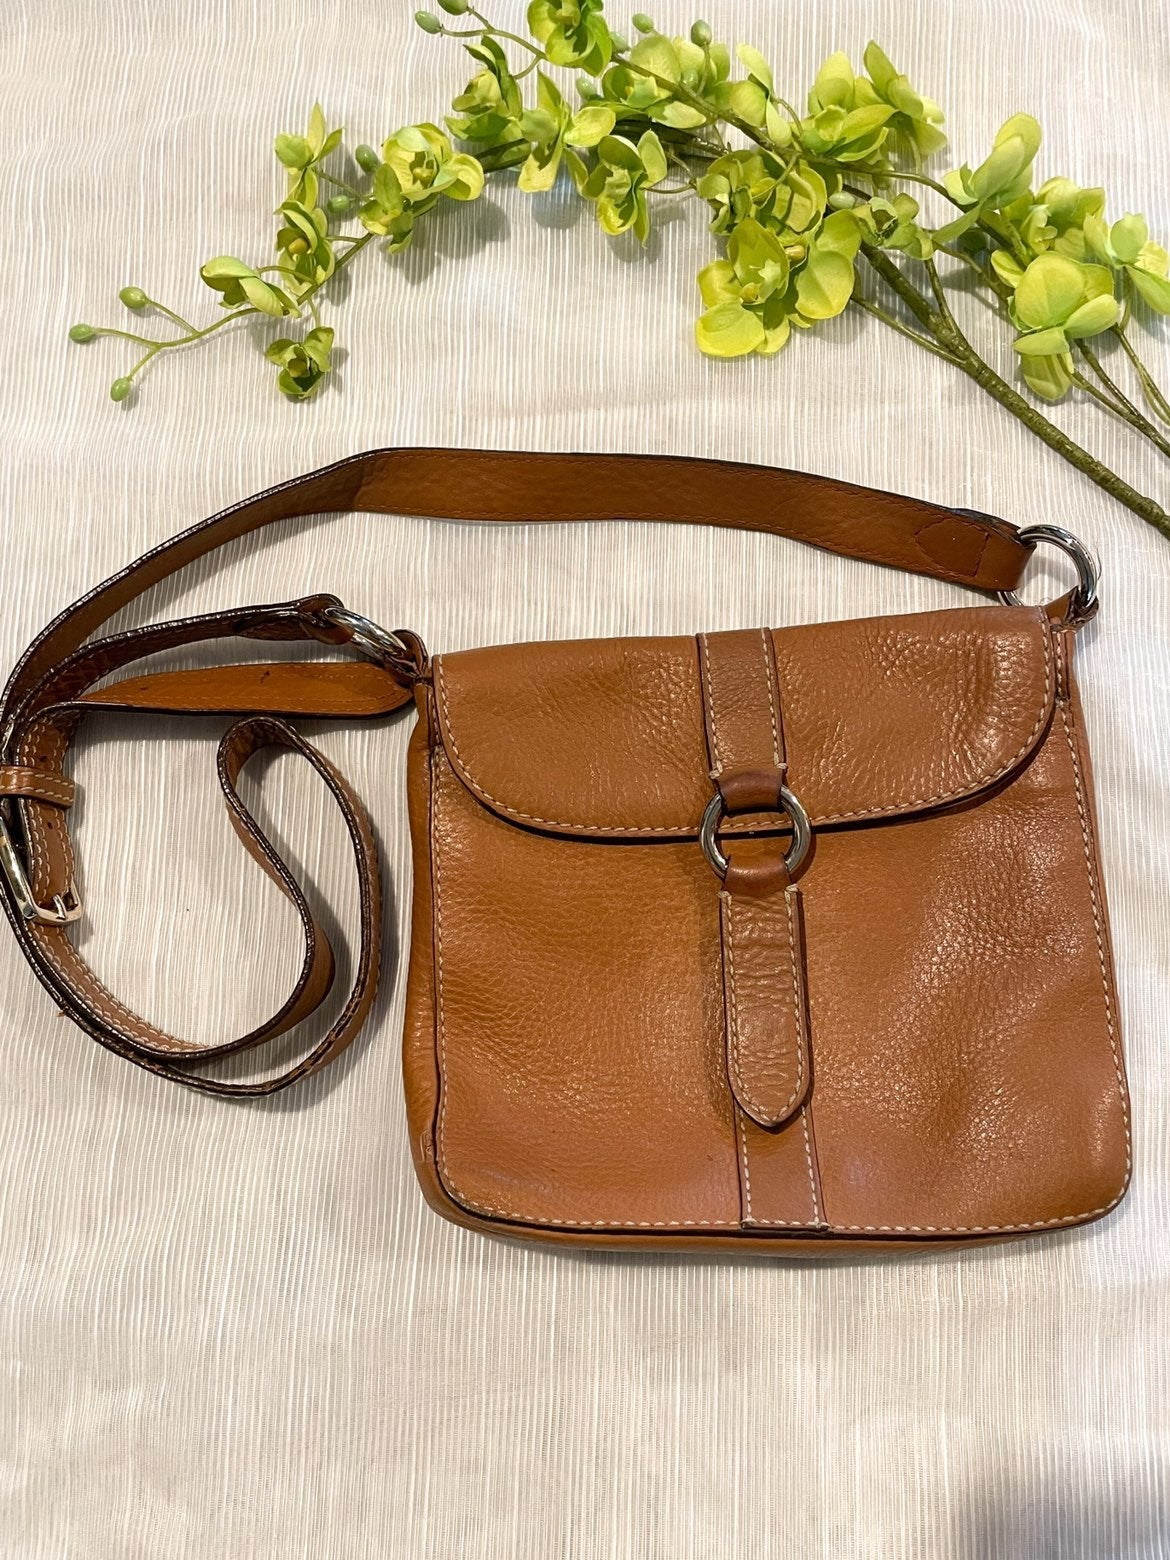 Cole Haan small brown leather crossbody